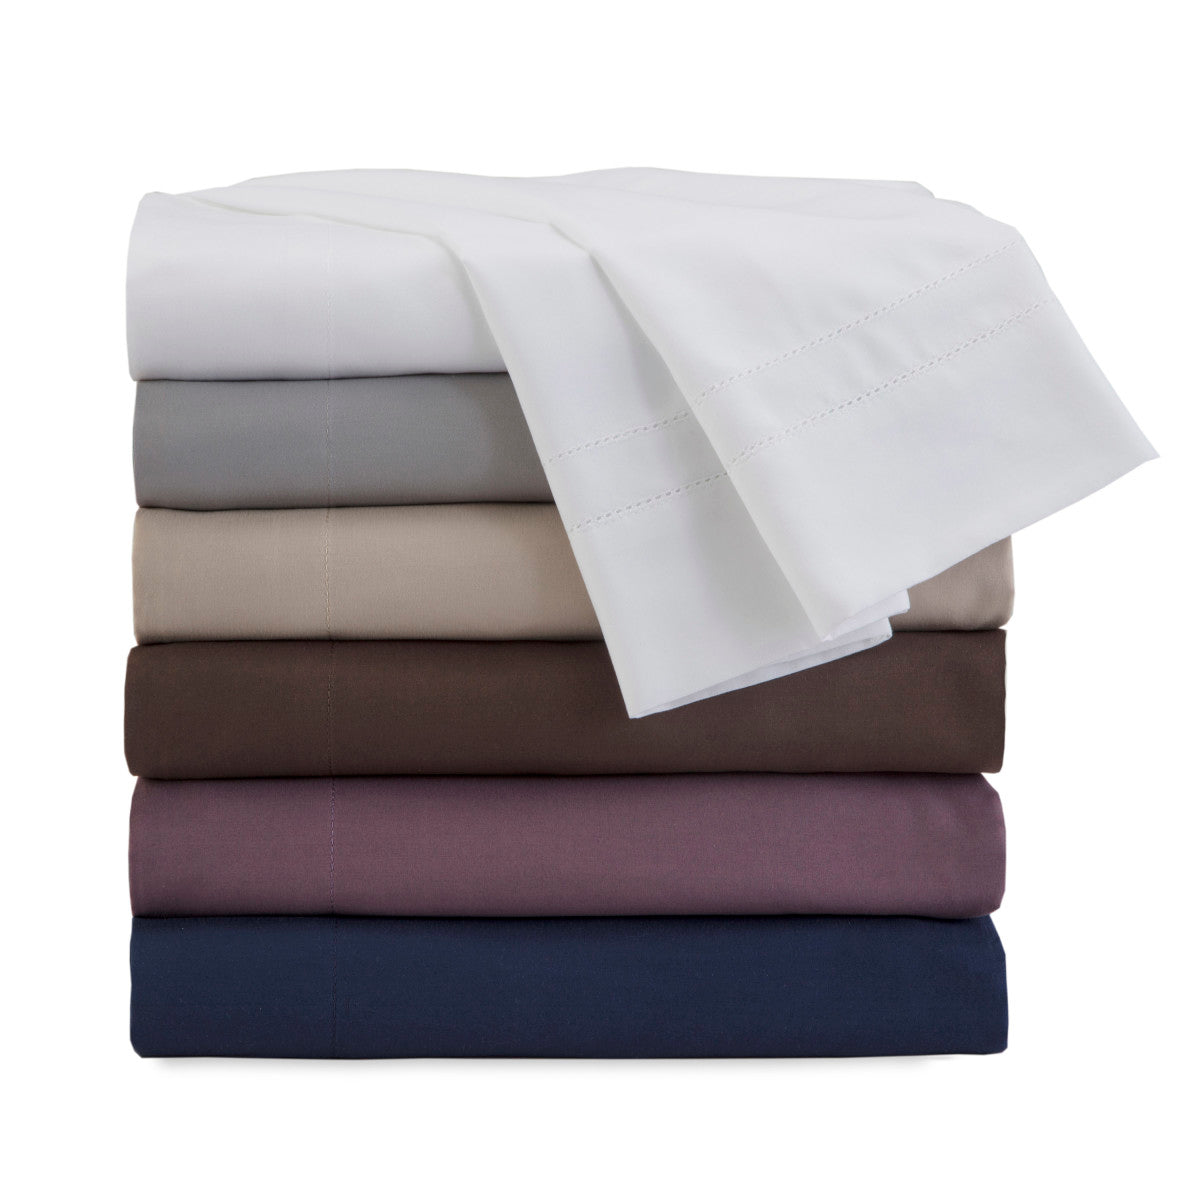 Martex Luxury 2000 Series Ultra Soft MicroBrushed Hemstitched Sheet Set